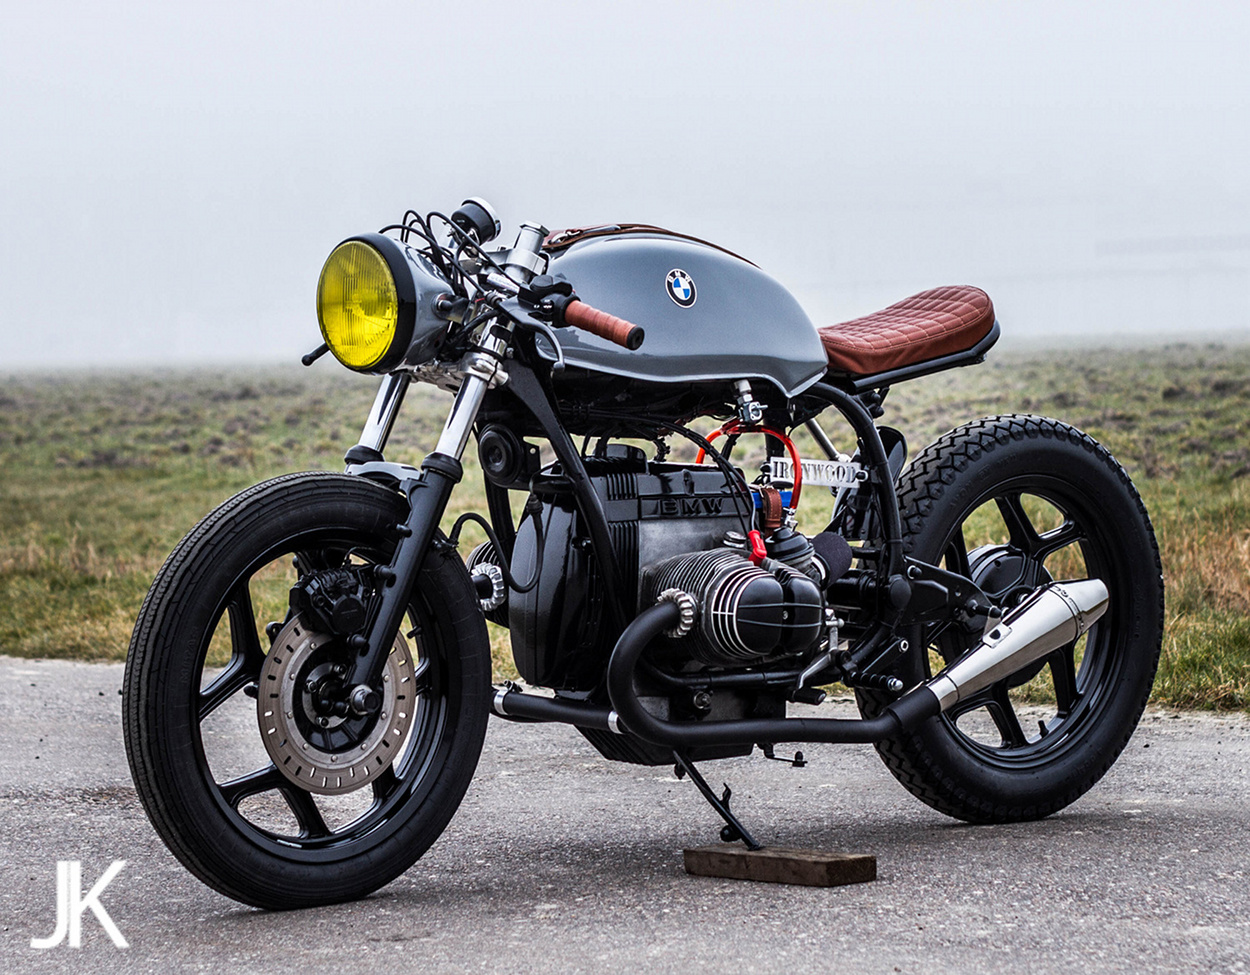 Best New Cafe Racer Bikes | Reviewmotors co